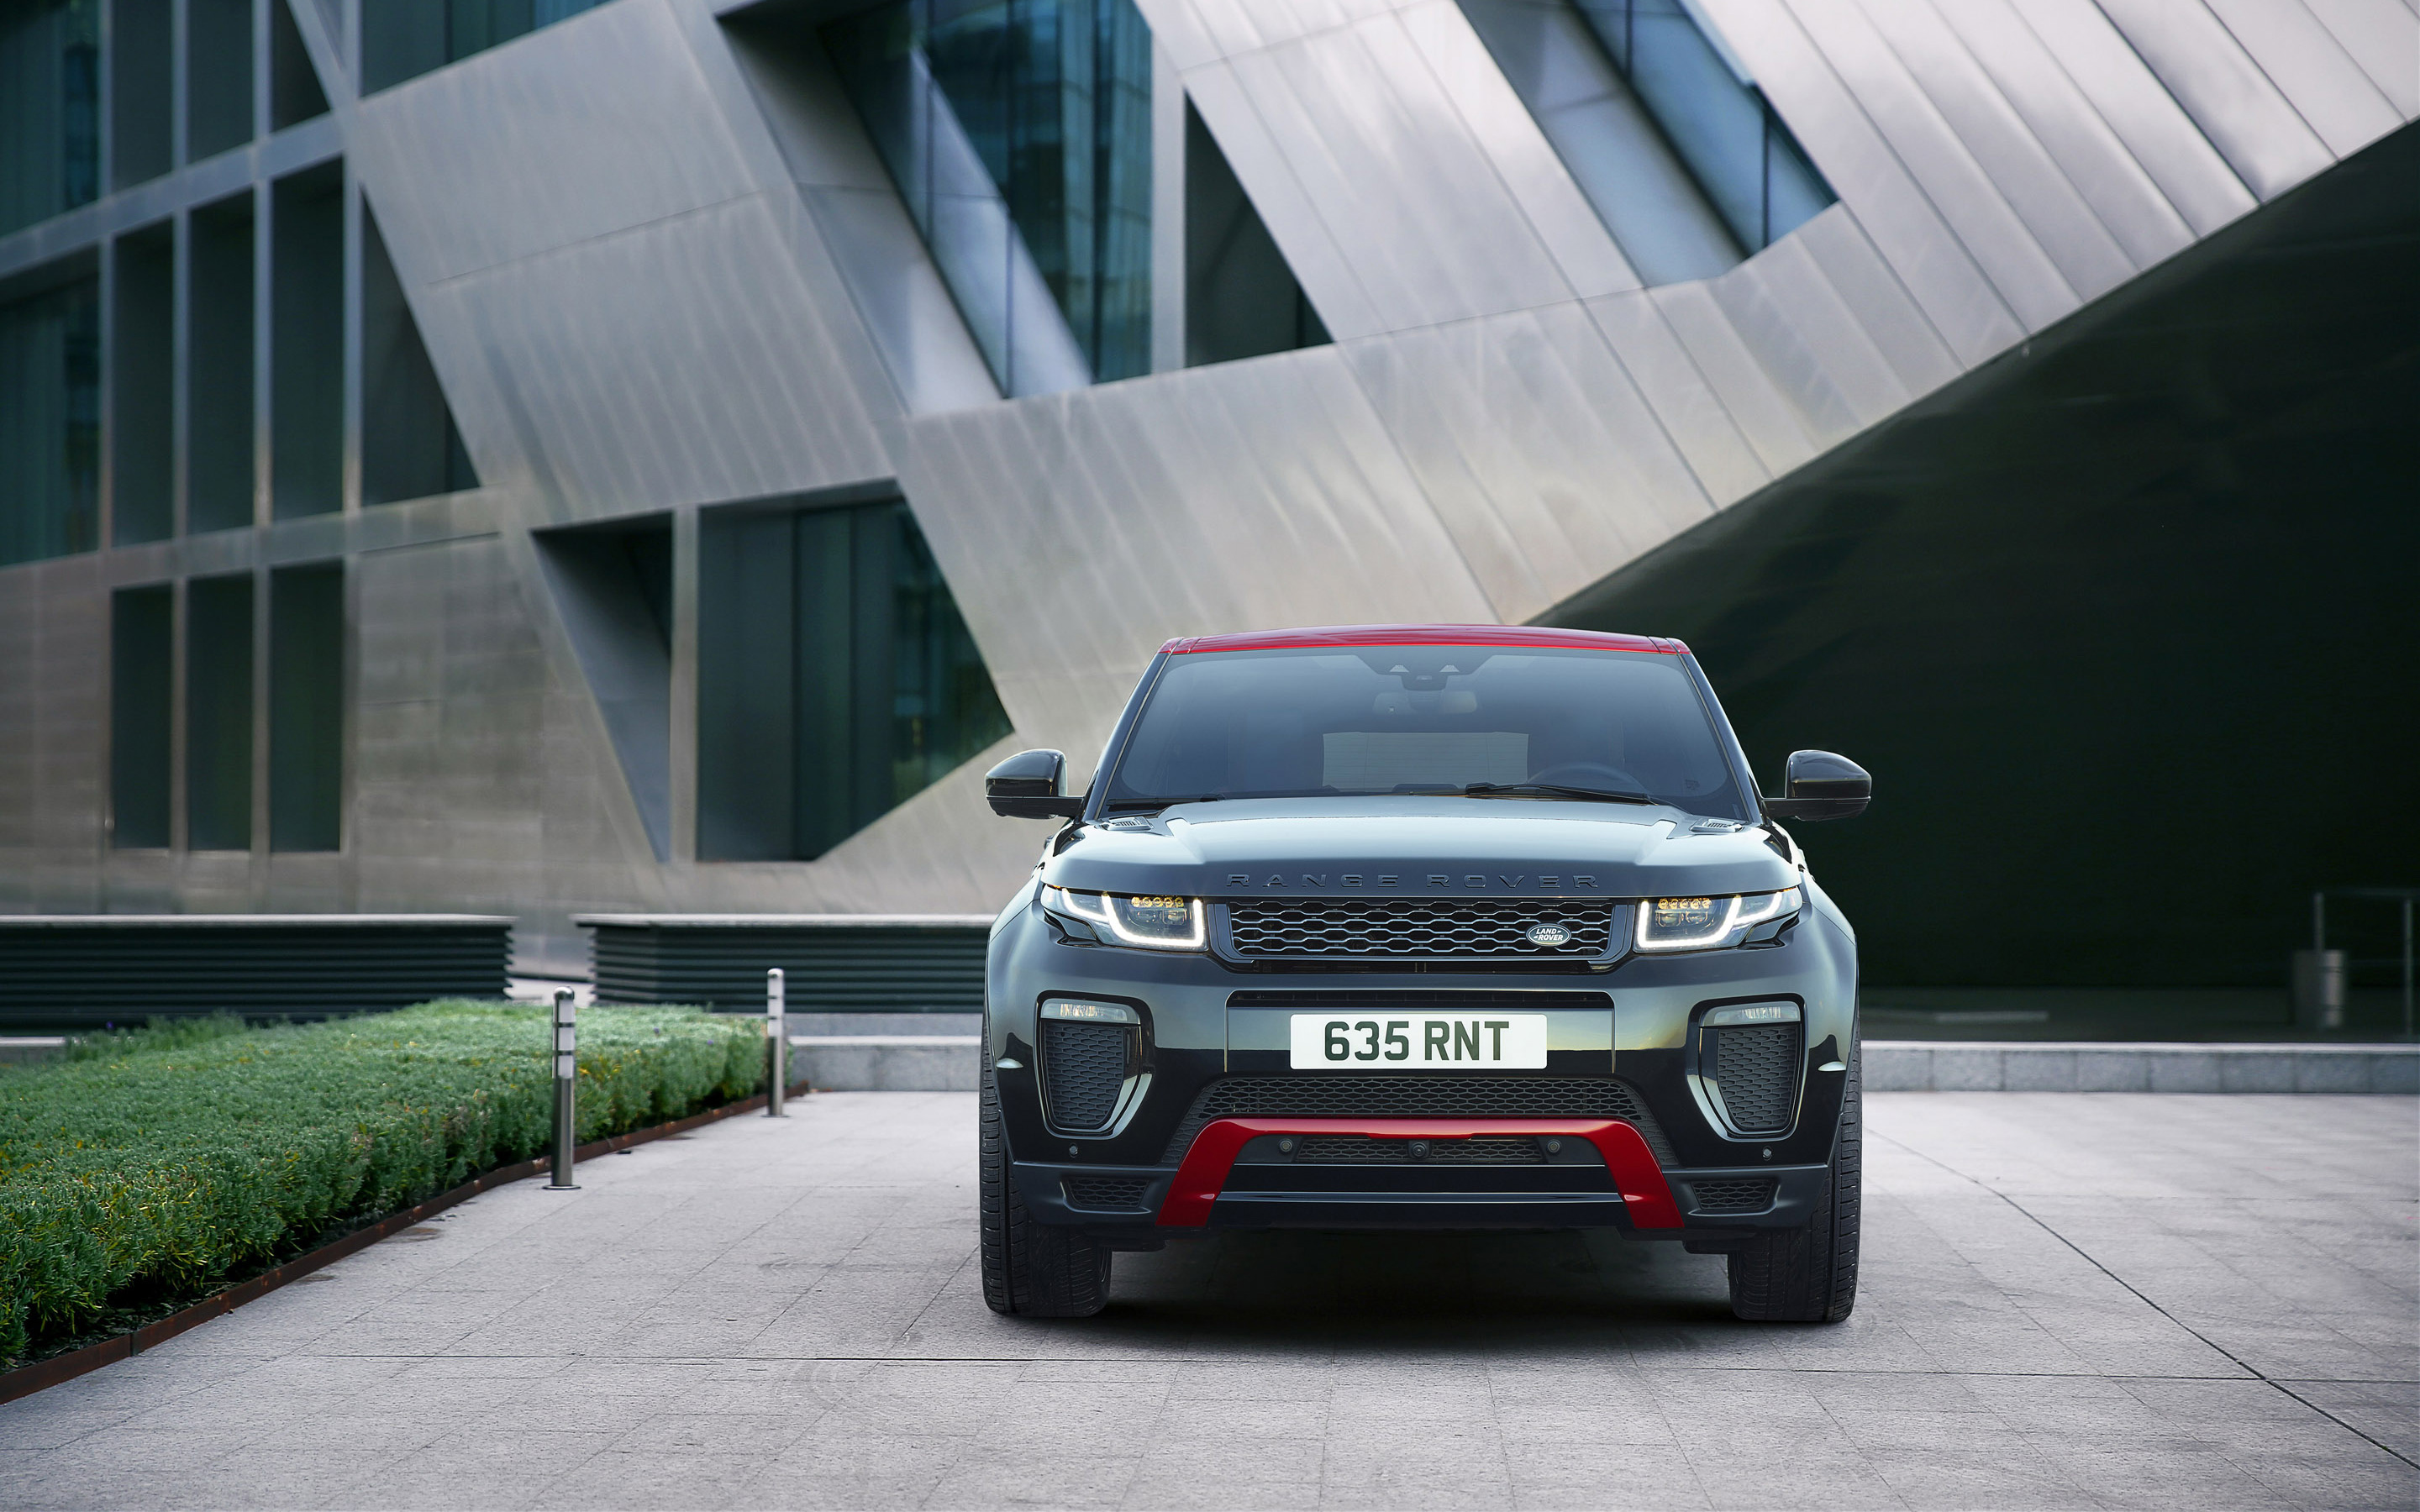 2016 Range Rover Evoque Ember Special Edition 2 Wallpaper Hd Car Wallpapers Id 6412